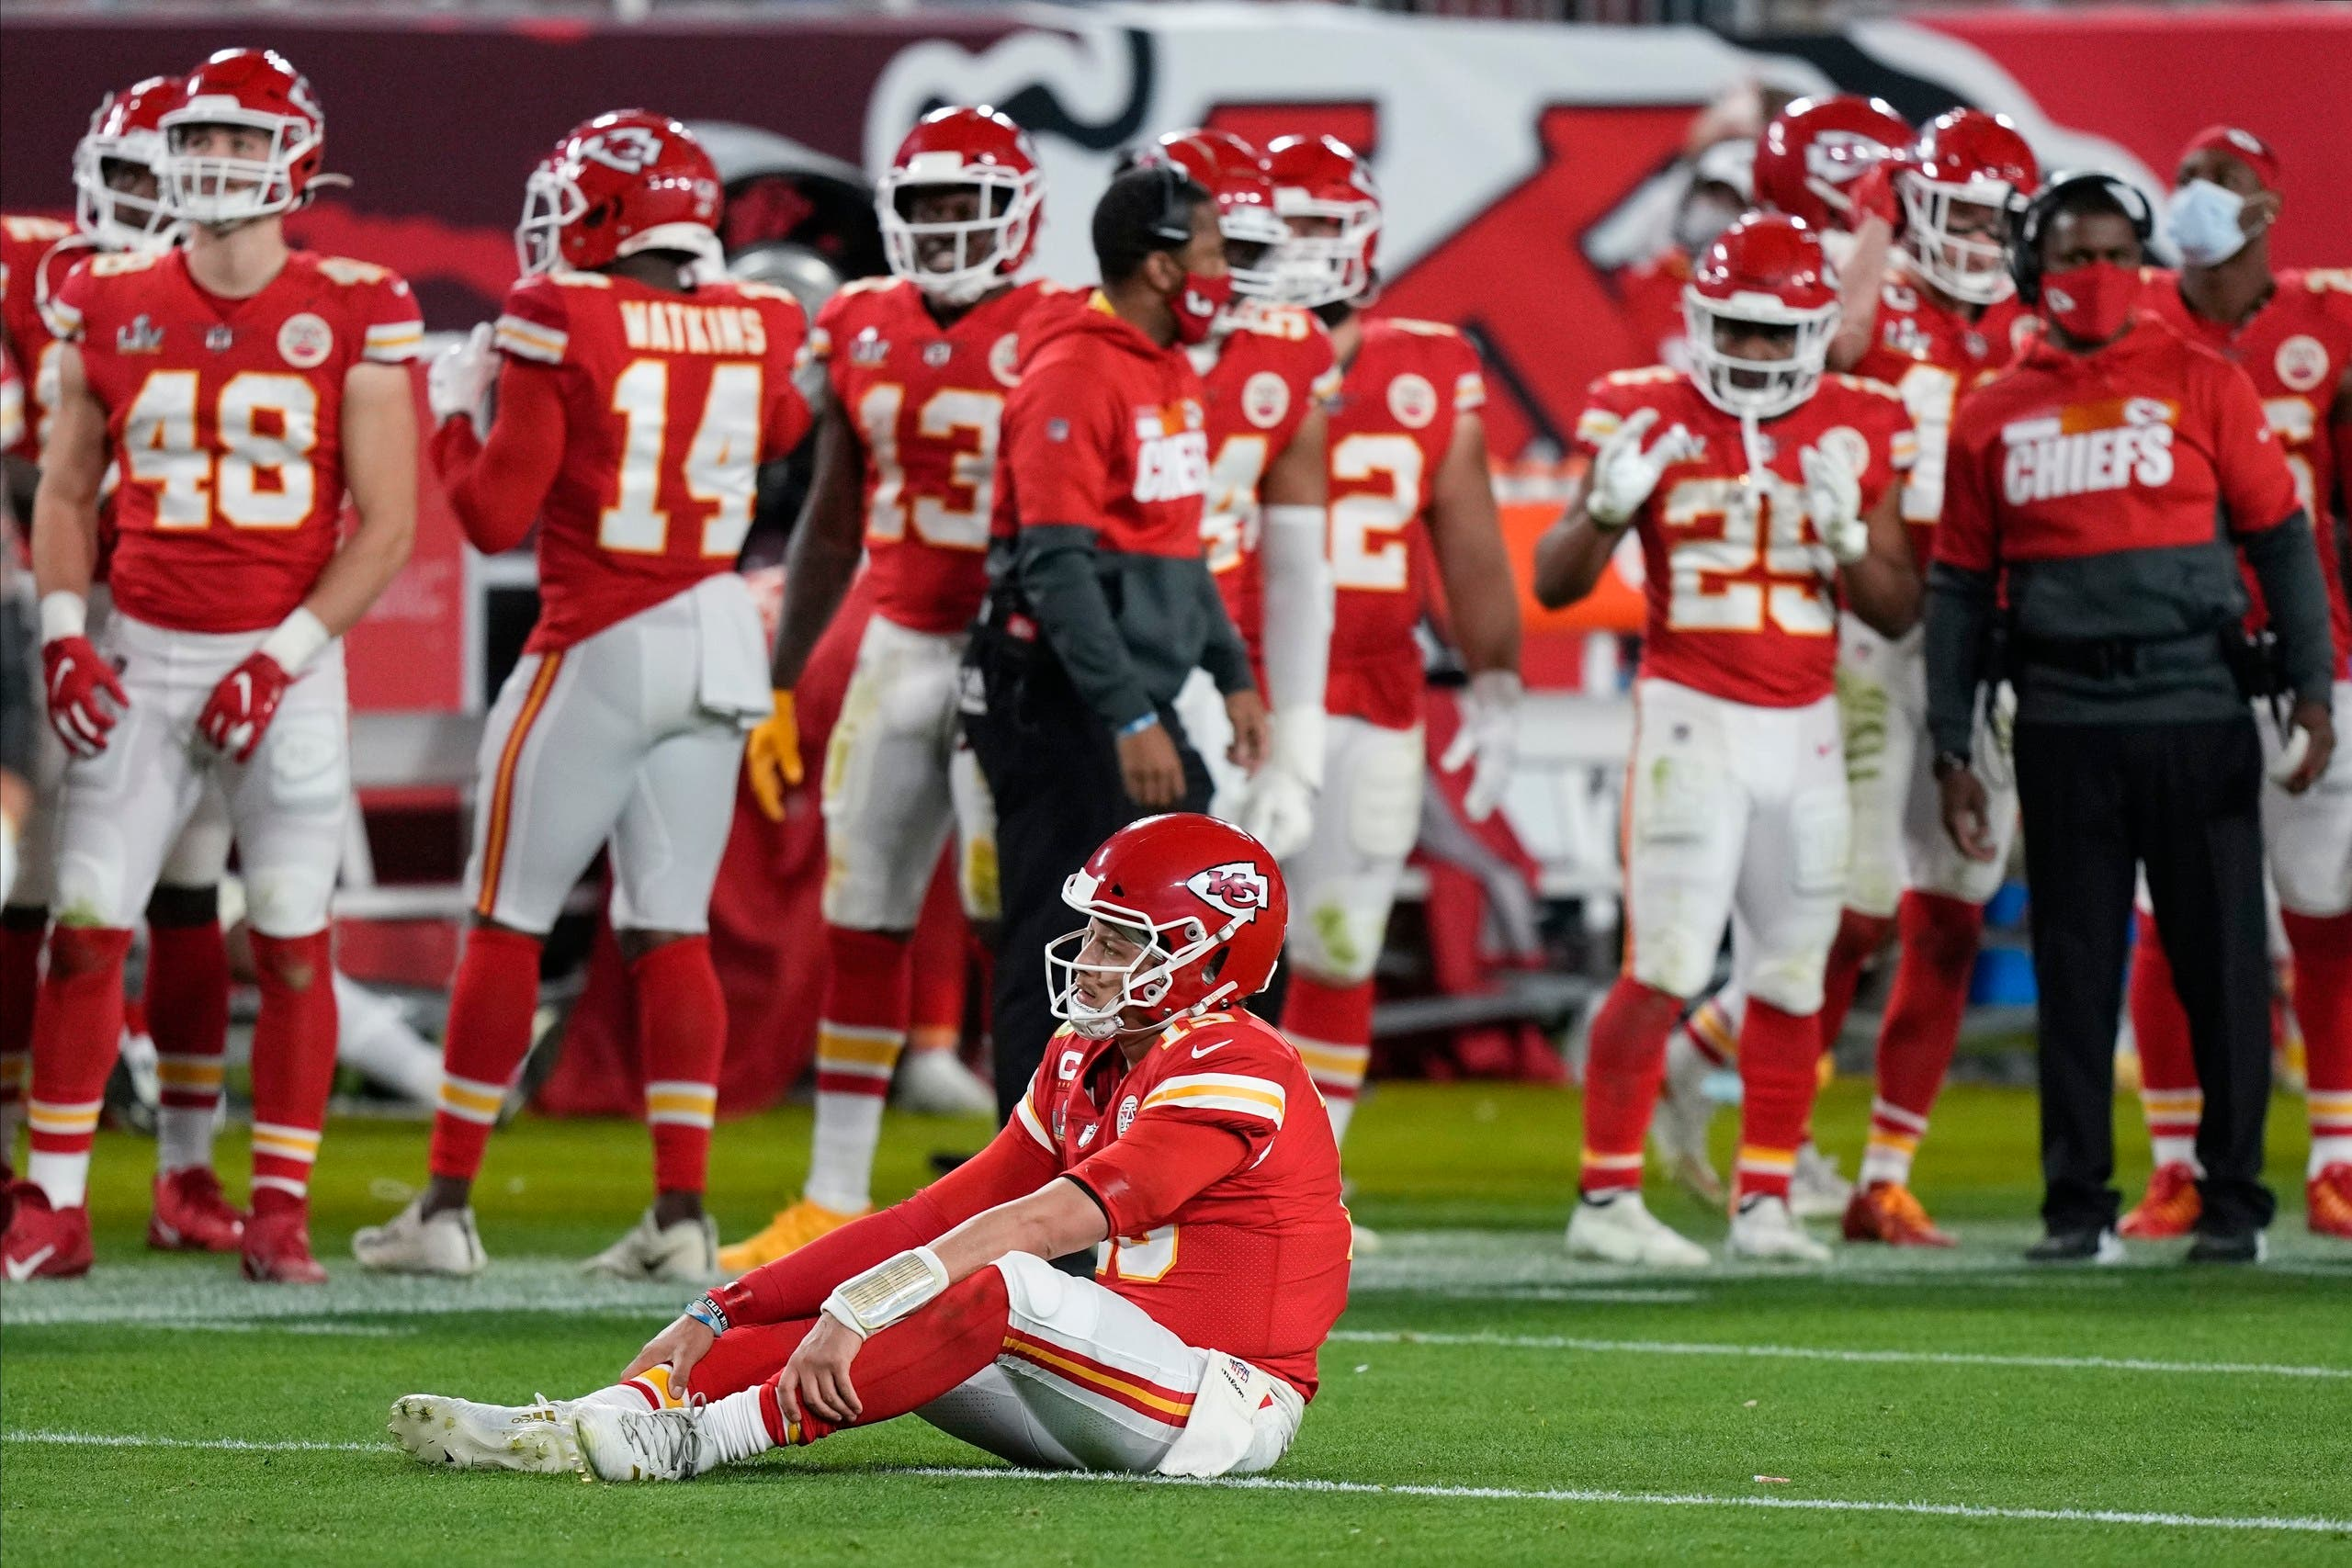 Kansas City Chiefs quarterback Patrick Mahomes (15) sits on the turf during the second half of the NFL Super Bowl 55 football game against the Tampa Bay Buccaneers, Sunday, Feb. 7, 2021, in Tampa, Fla. (AP)